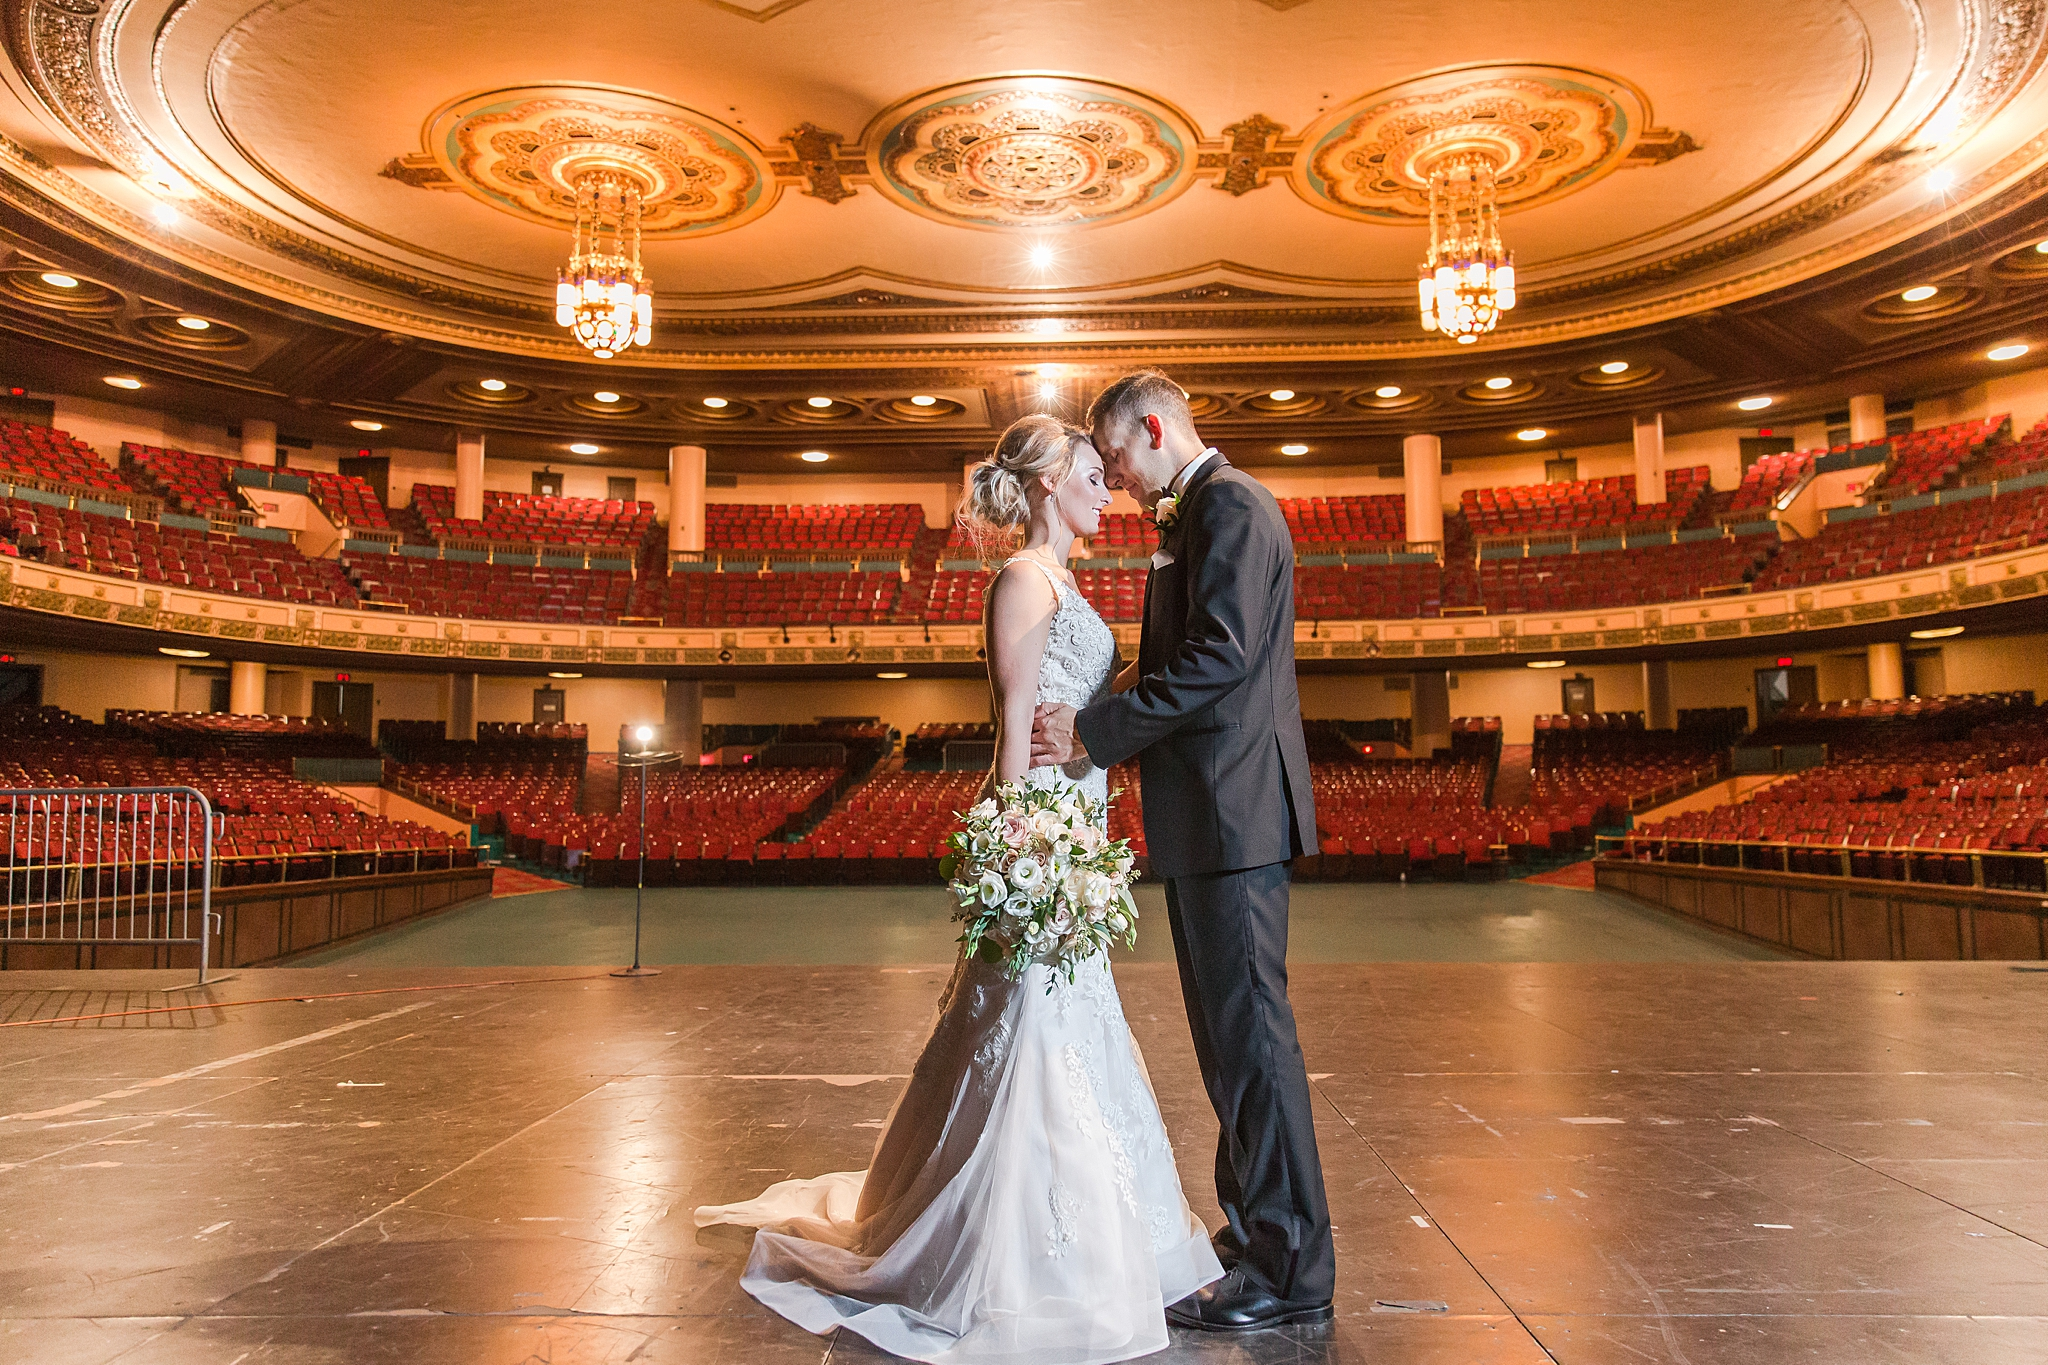 masonic-temple-iconic-wedding-photography-in-detroit-michigan-by-courtney-carolyn-photography_0051.jpg